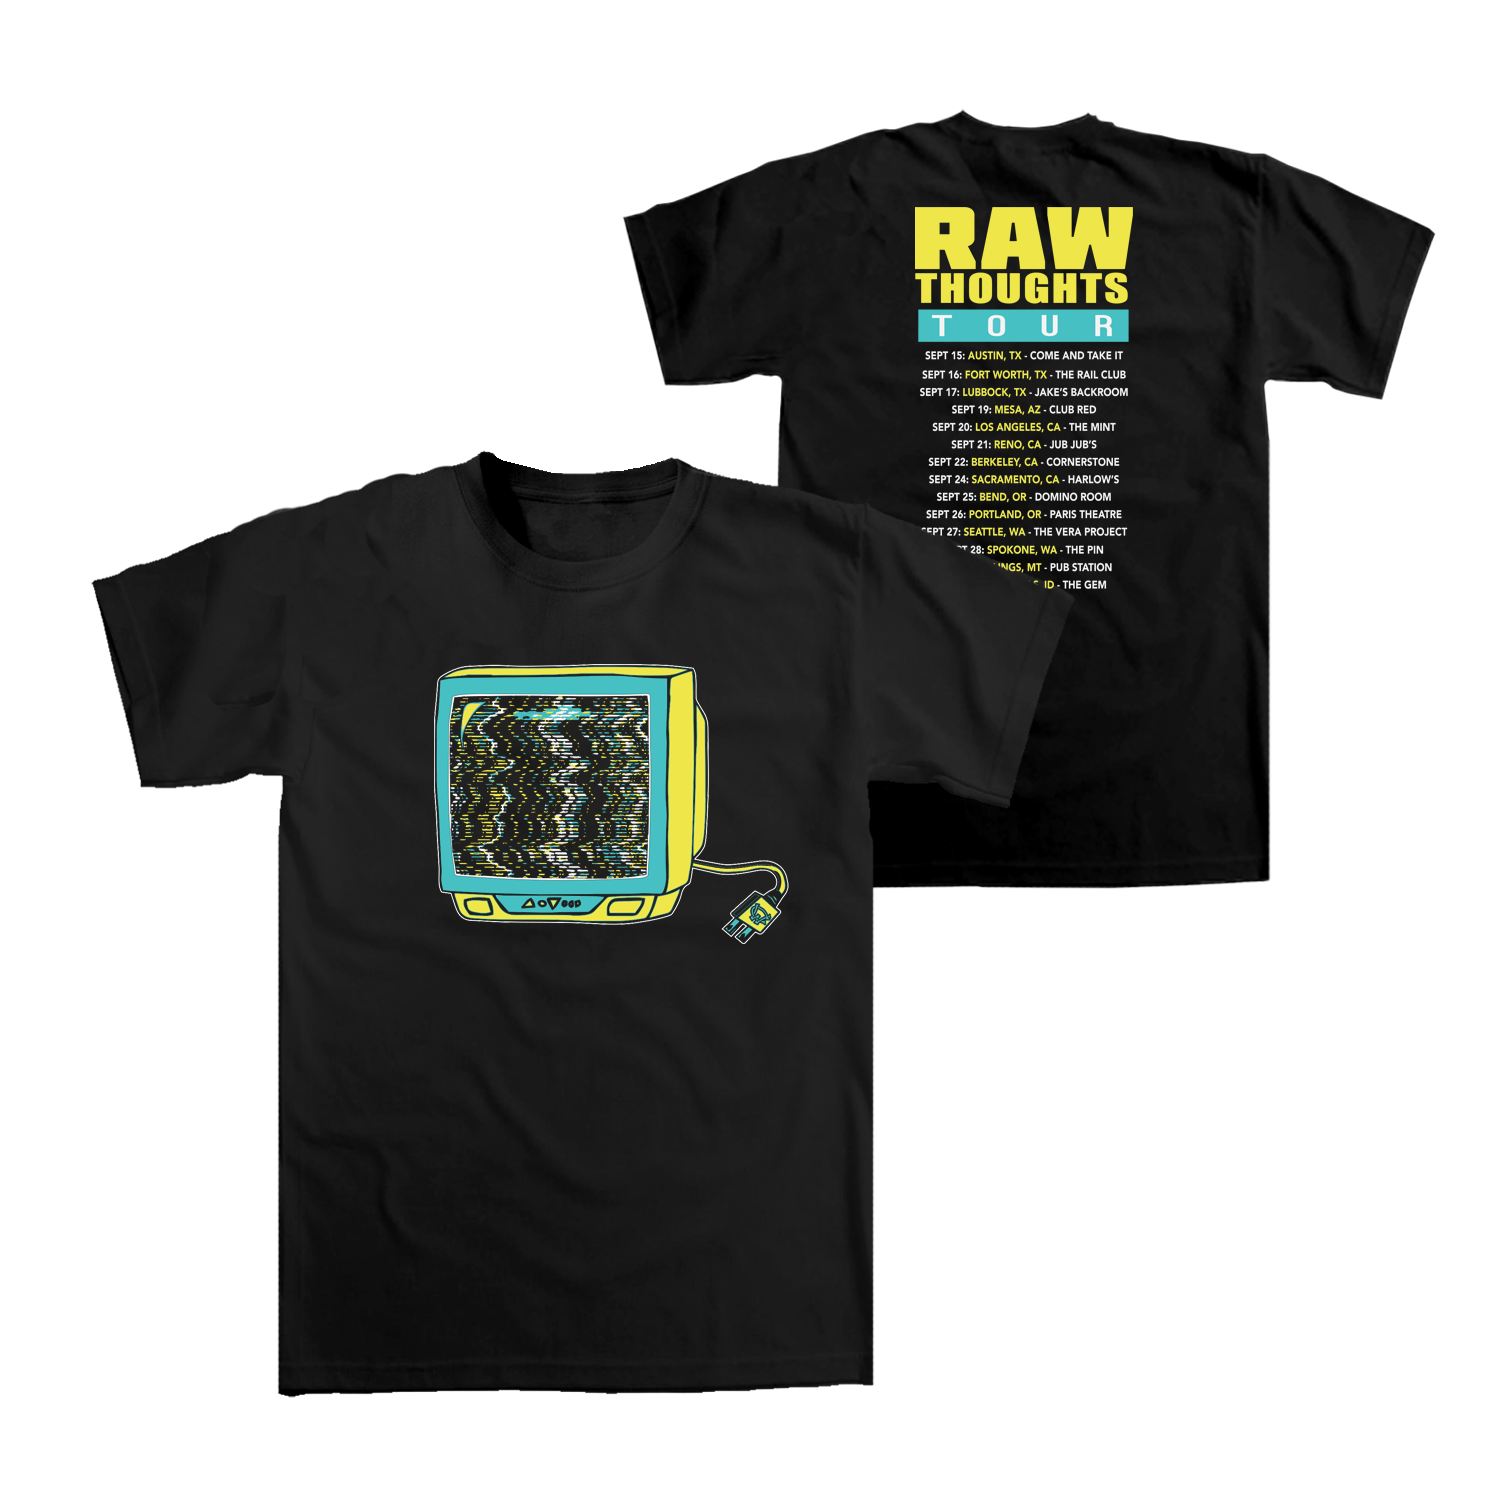 Raw Thoughts Tour T-shirt (West Coast)